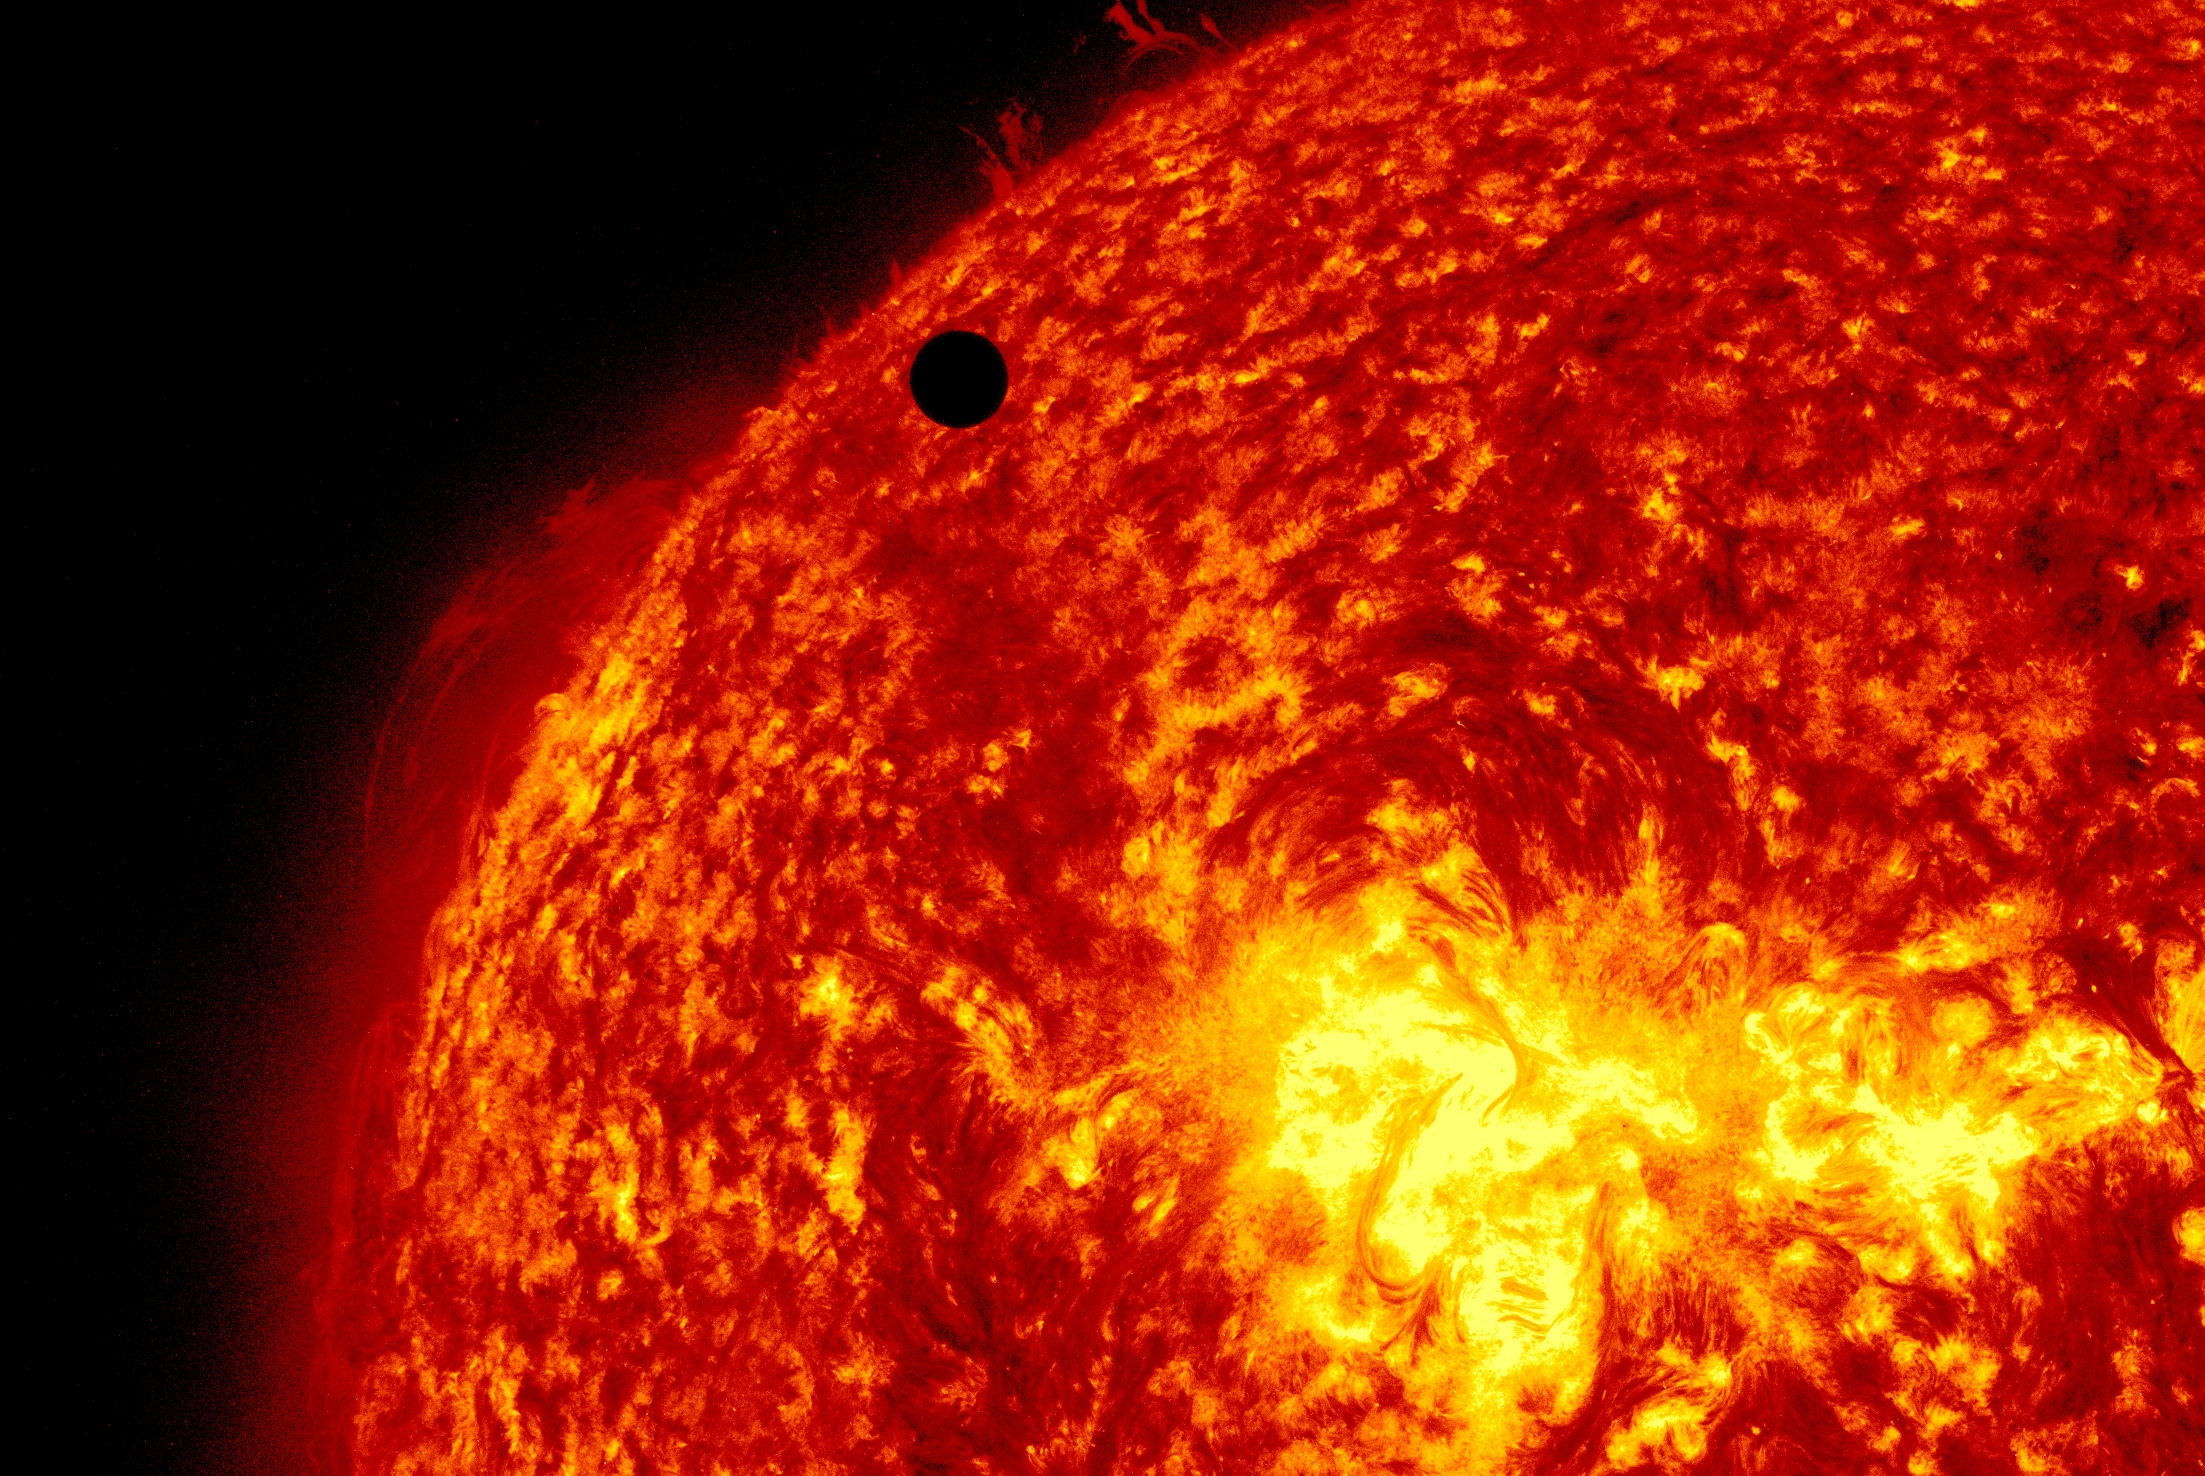 file:sdo's ultra-high definition view of 2012 venus transit (304